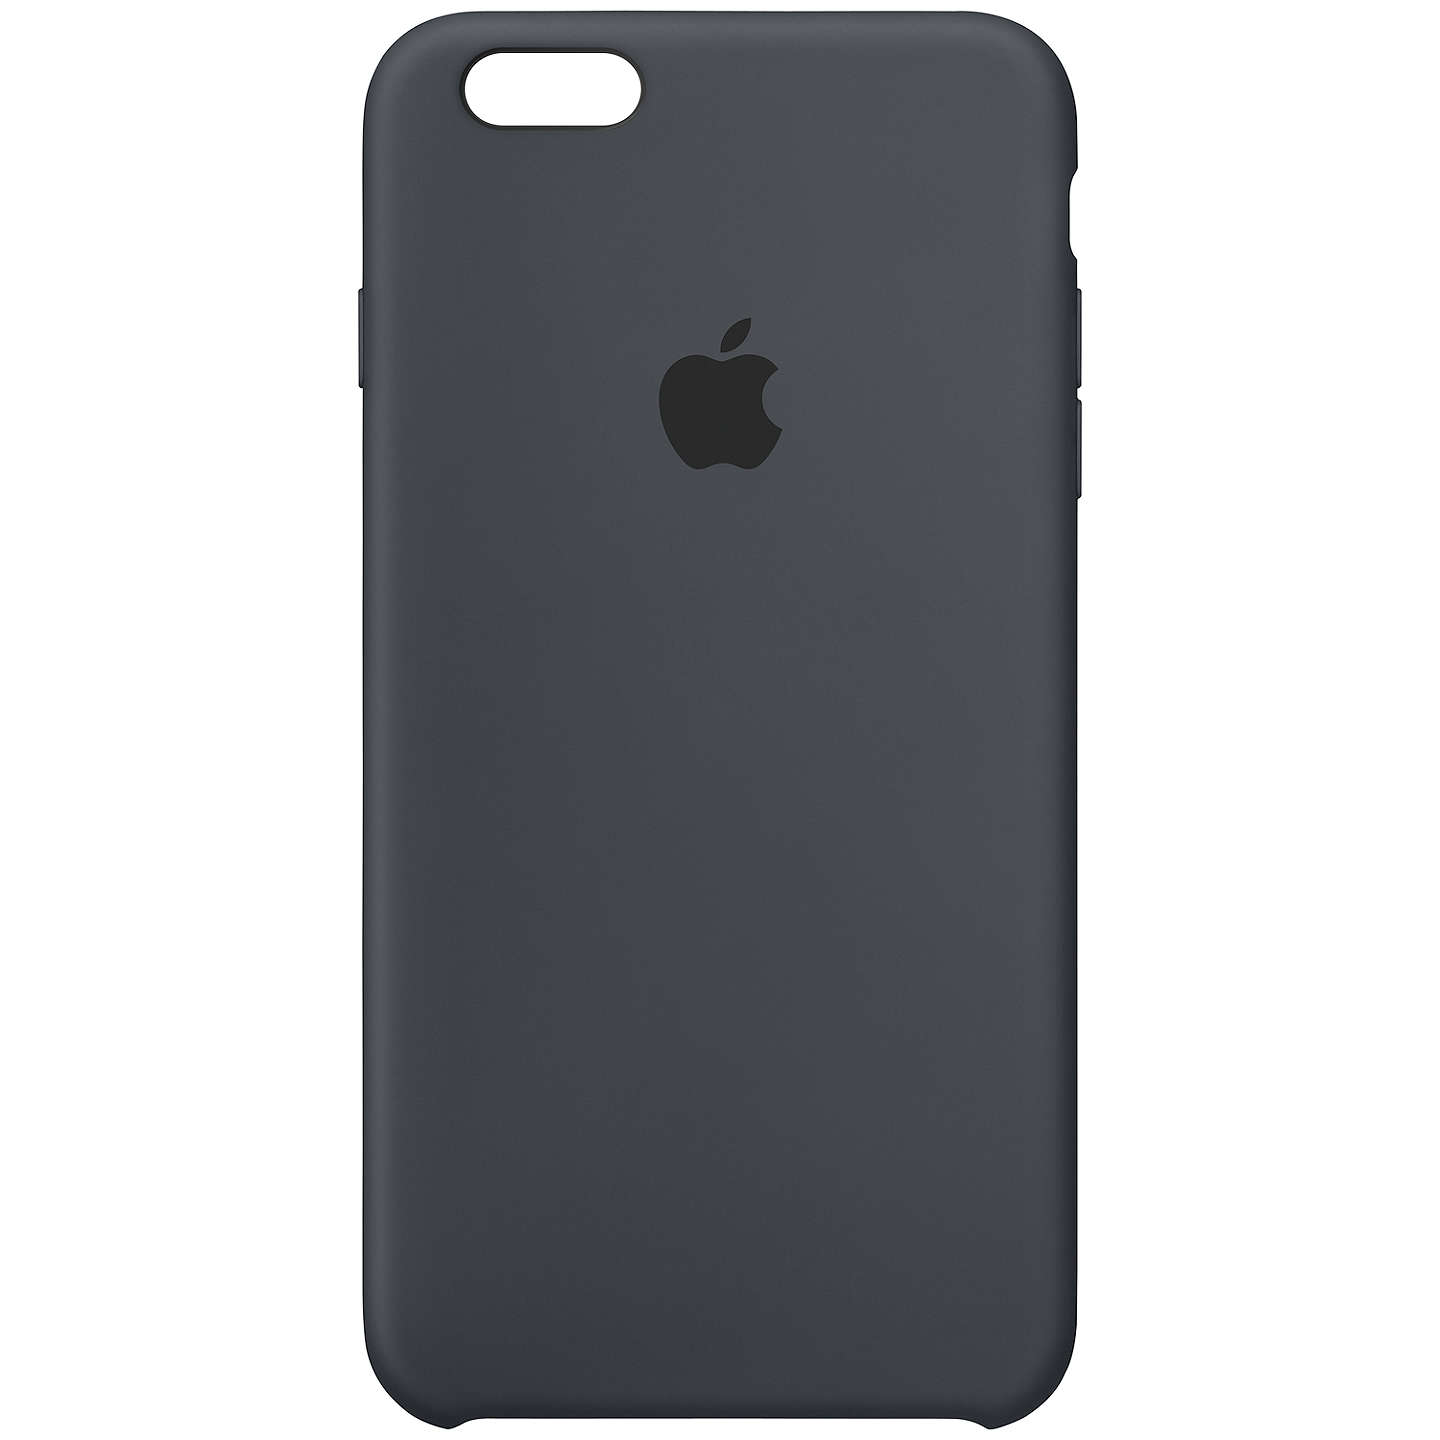 BuyApple Silicone Case for iPhone 6s Plus, Charcoal Grey Online at  johnlewis.com